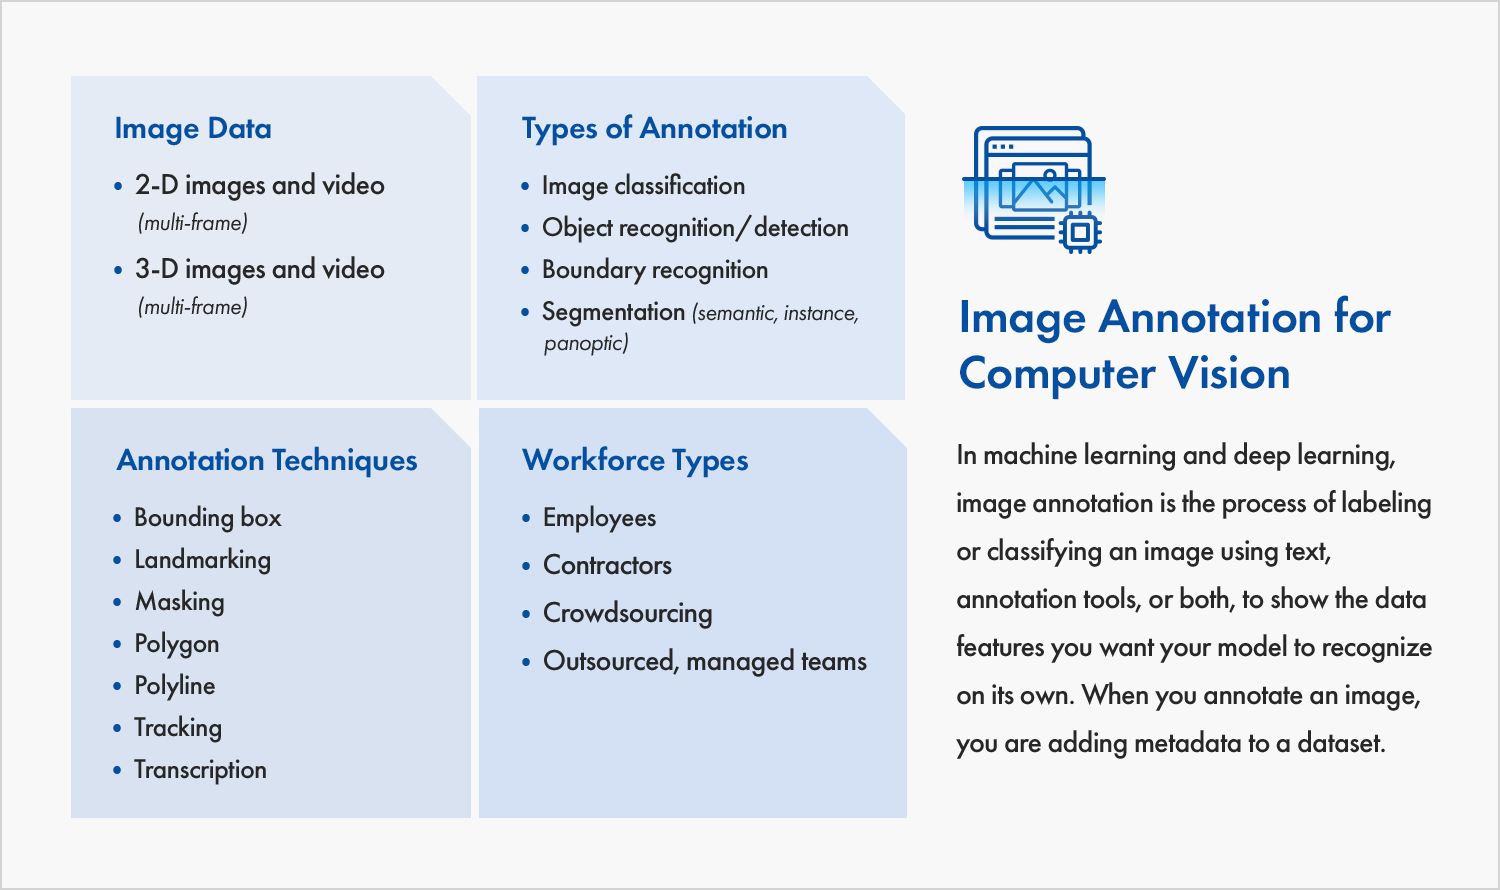 This image is an overview of the data types, annotation types, annotation techniques, and workforce types used in image annotation for computer vision. Image data includes two-dimensional images and video and three-dimensional images and video. Videos are multi-frame. Types of annotations include: image classification, object recognition or detection, segmentation (which can be semantic, instance, or panoptic), and boundary recognition. Annotation techniques include bounding boxes, landmarking, masking, polygon, polyline, tracking, and transcription. Workforce types include employees, contractors, crowdsourcing, and outsourced managed teams.